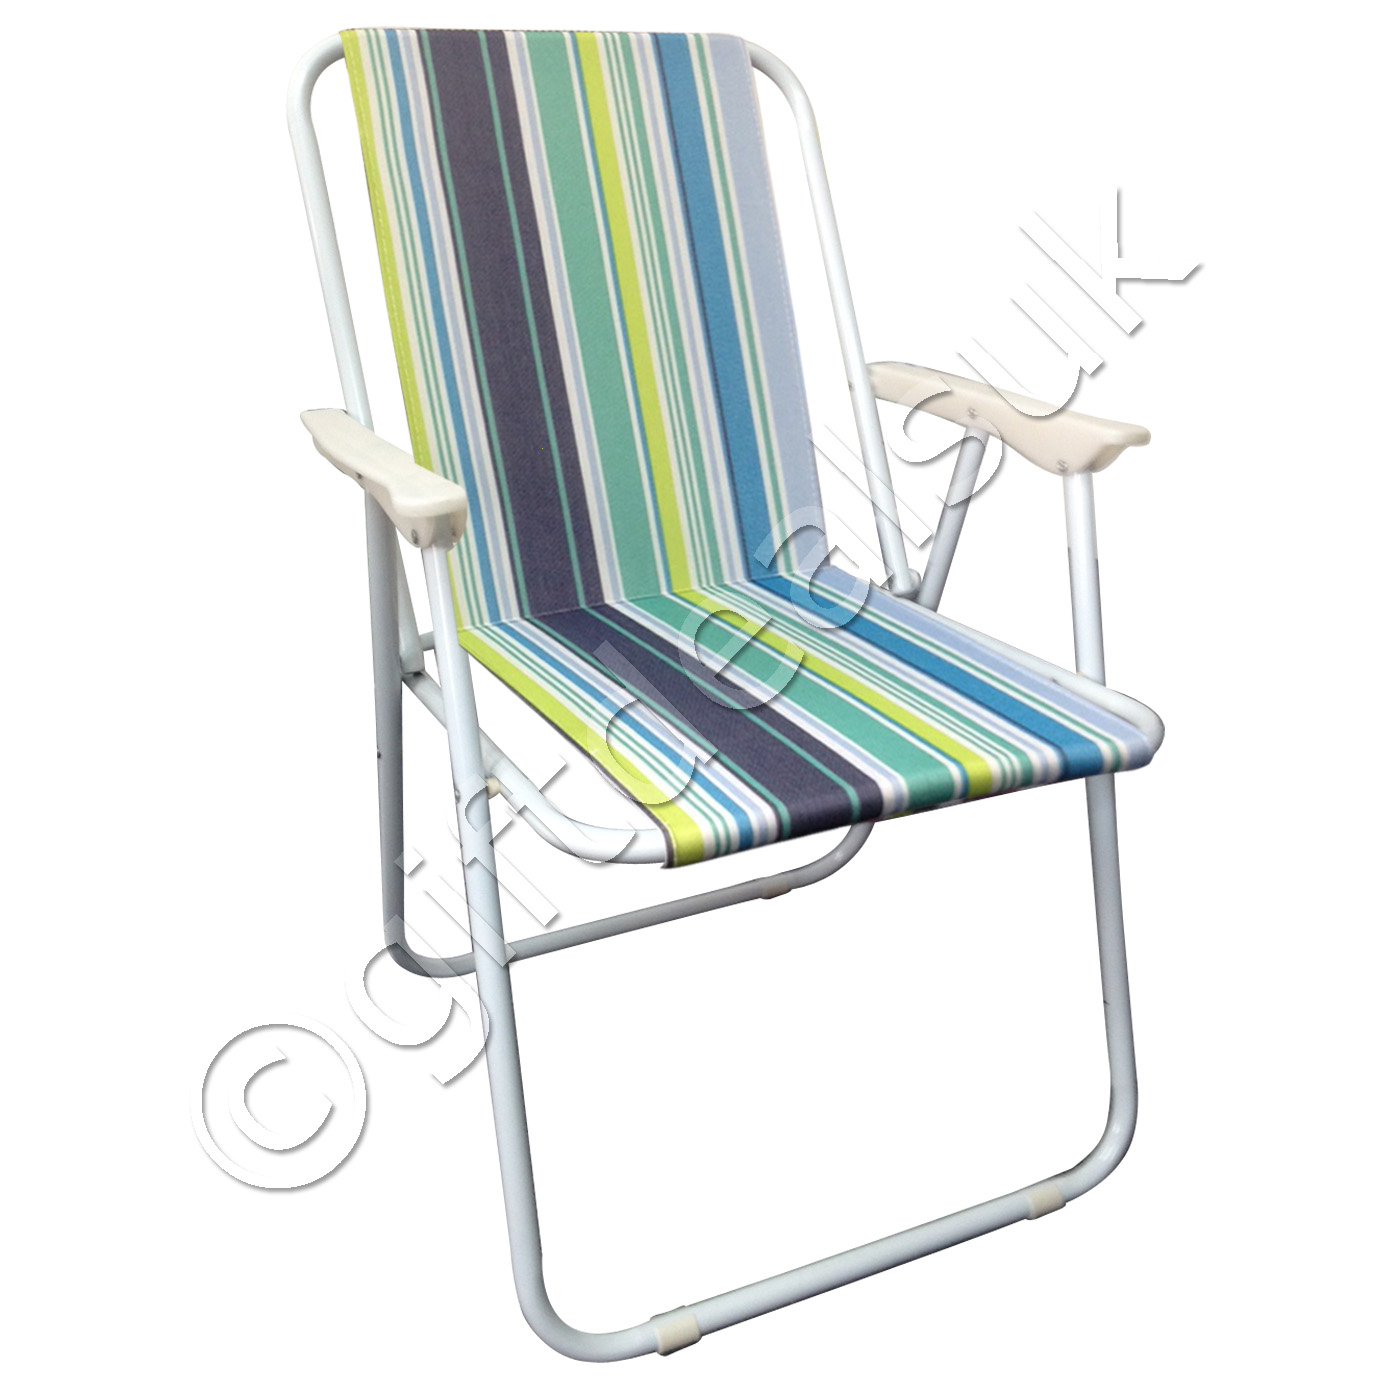 portable folding chairs vibrating chair for baby new design deck outdoor garden